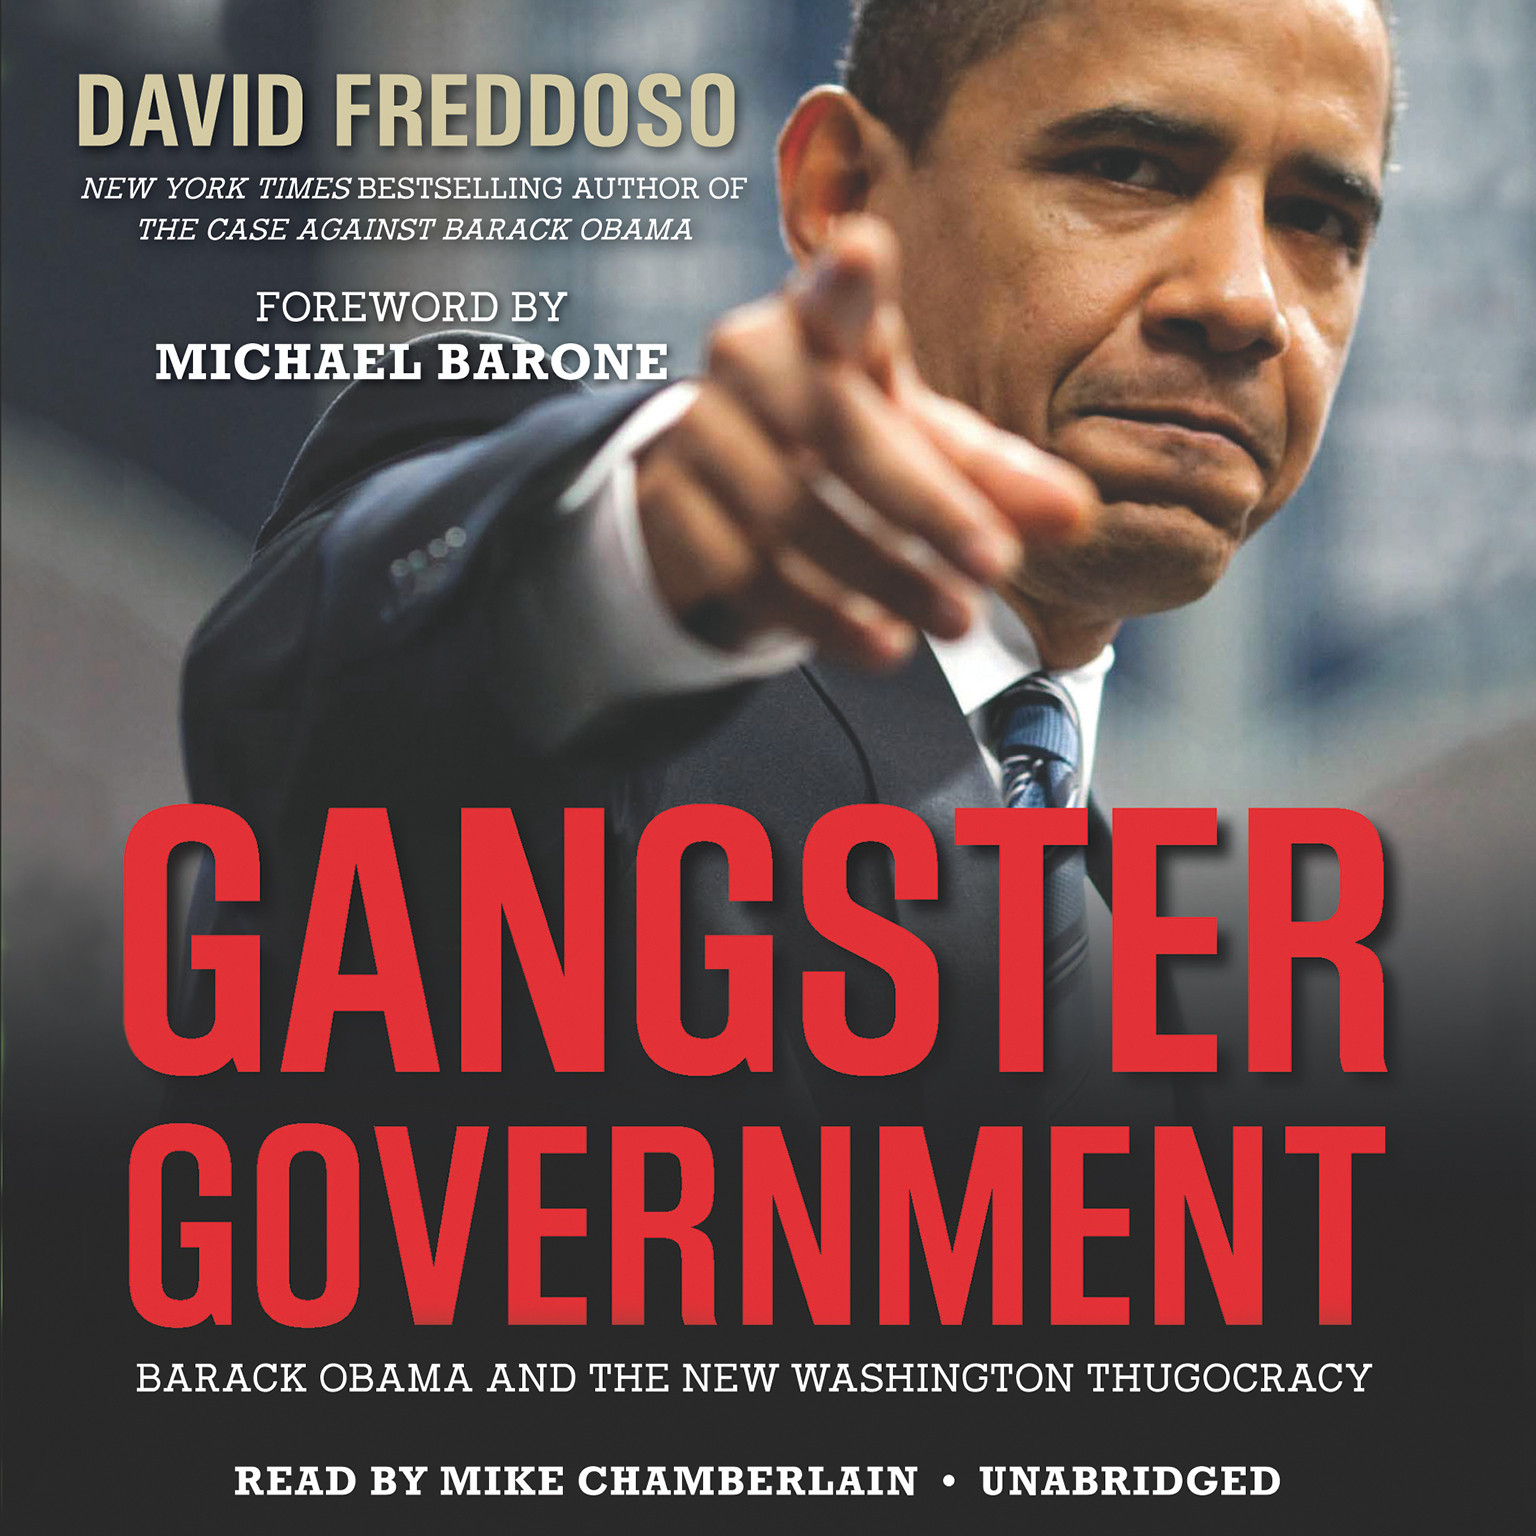 Printable Gangster Government: Barack Obama and the New Washington Thugocracy Audiobook Cover Art